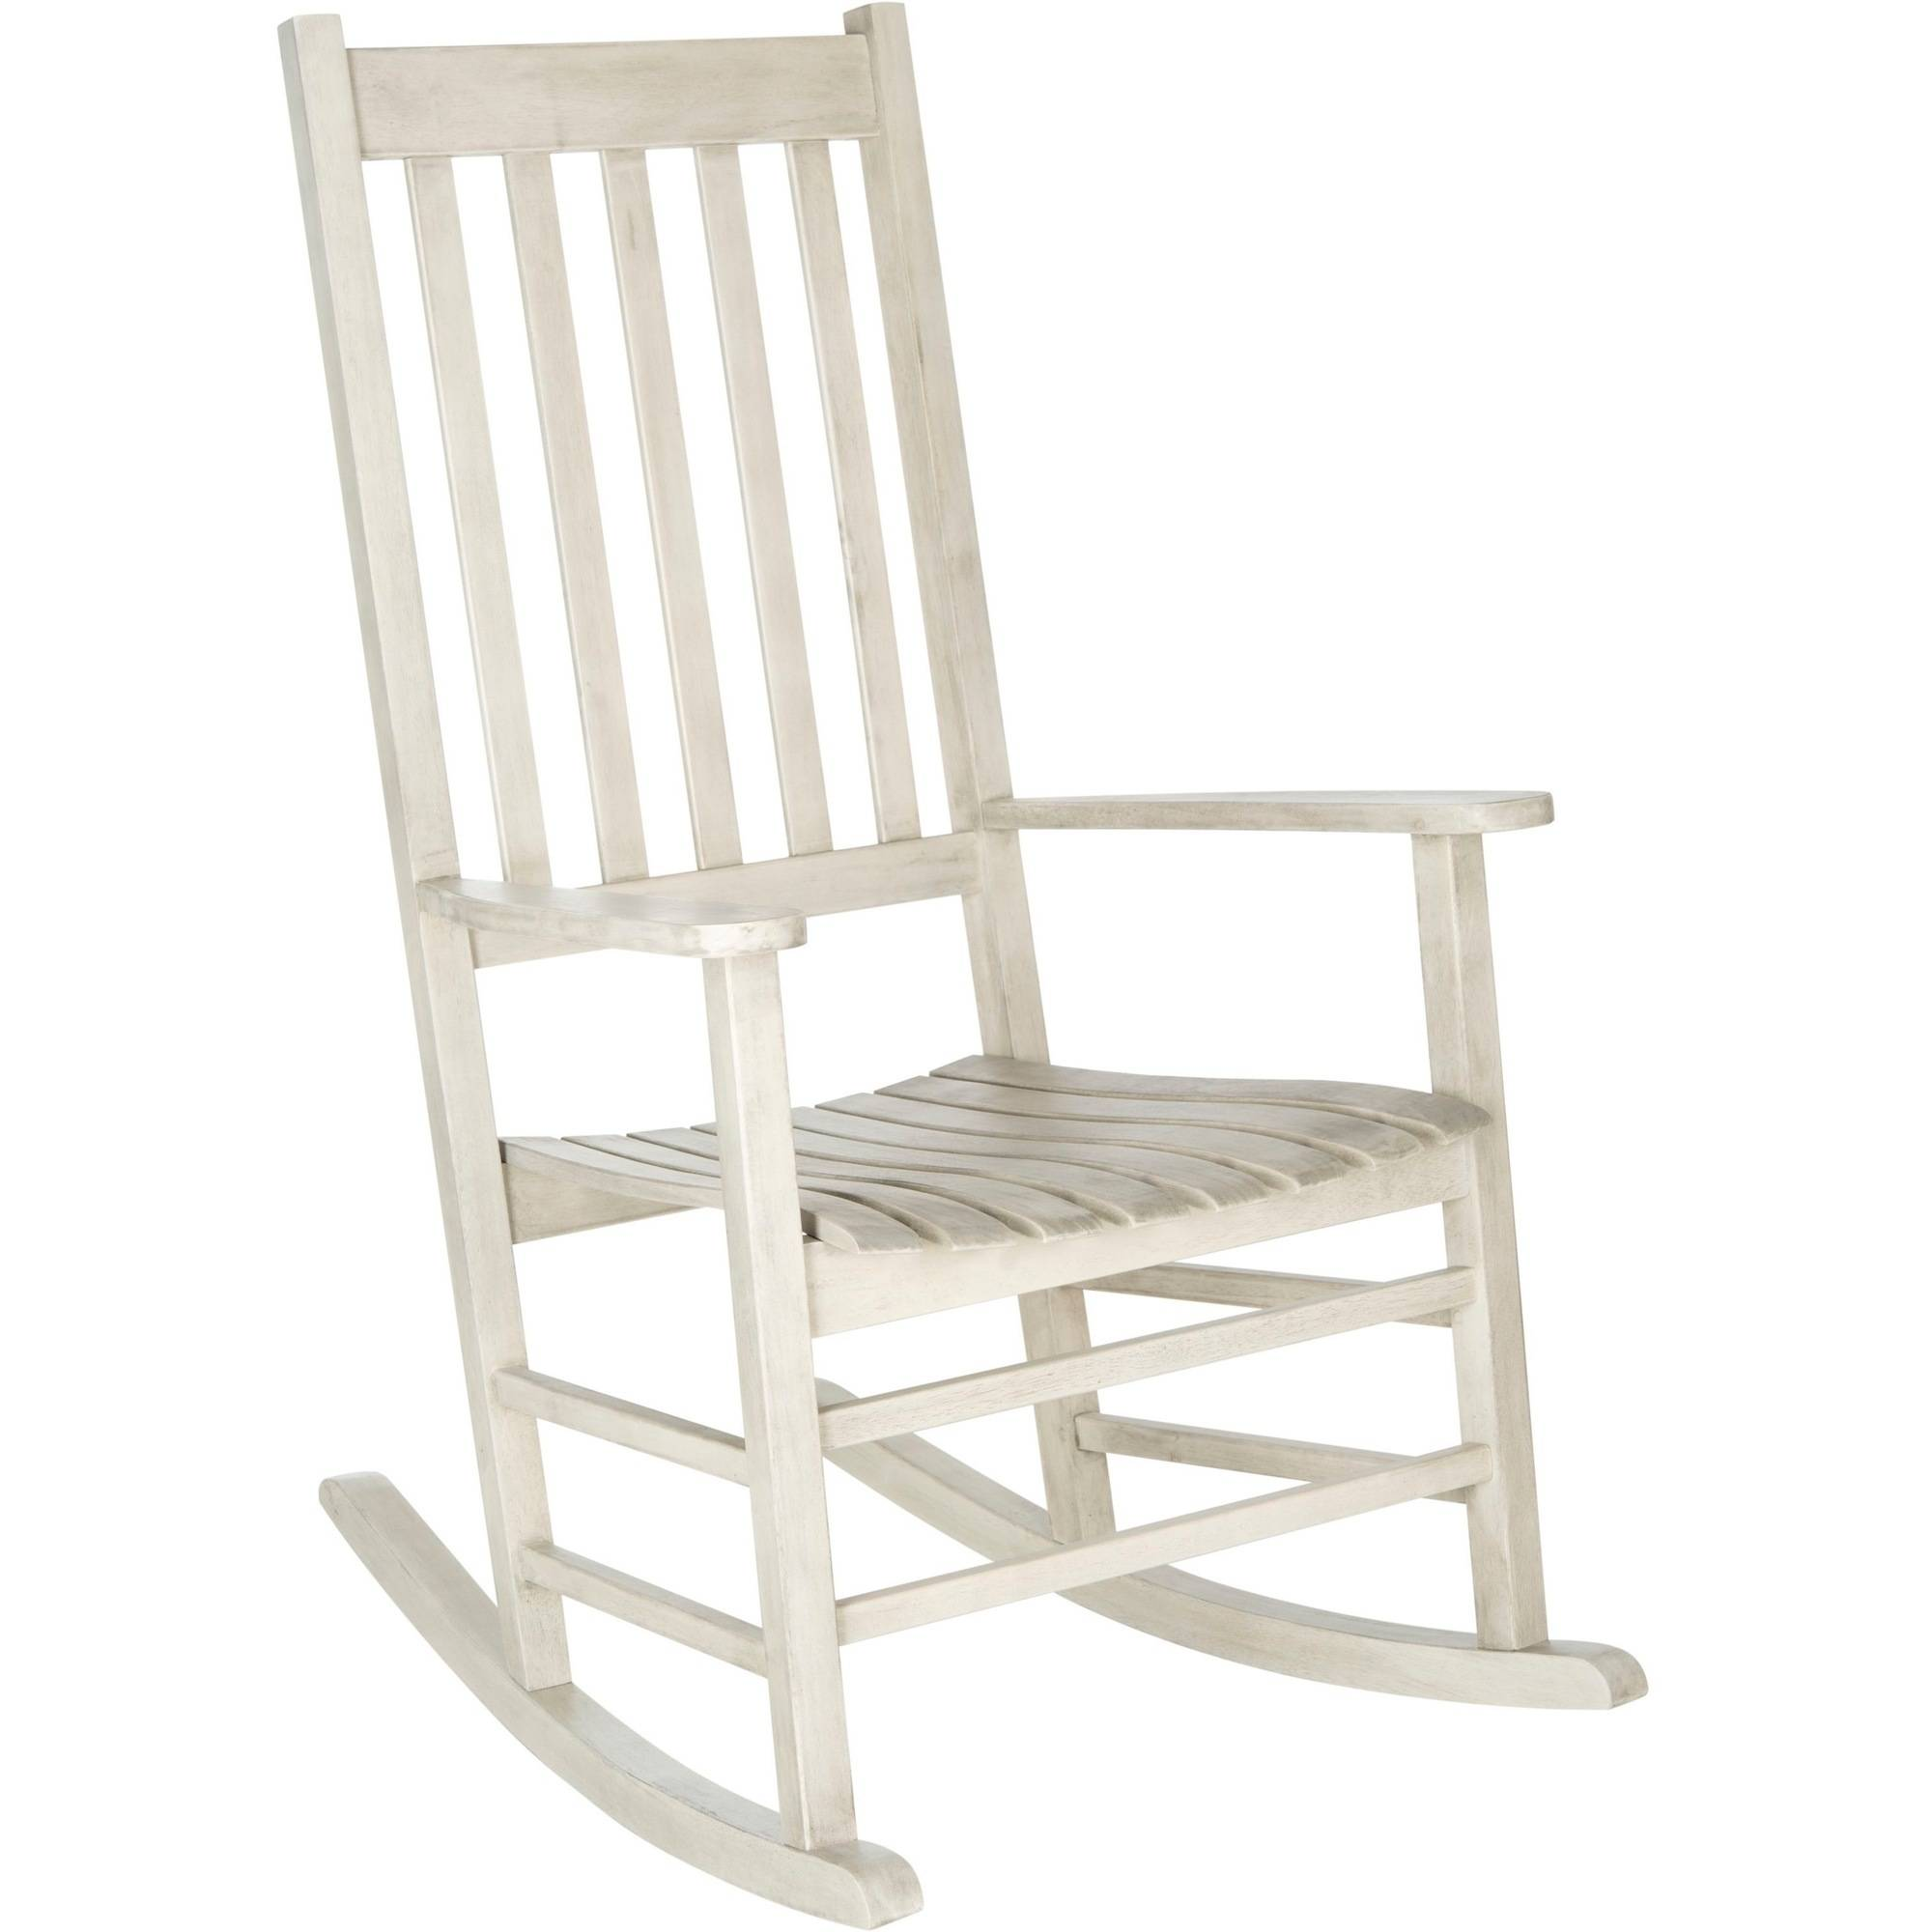 Safavieh Shasta Outdoor Rocking Chair, Multiple Colors   Walmart.com